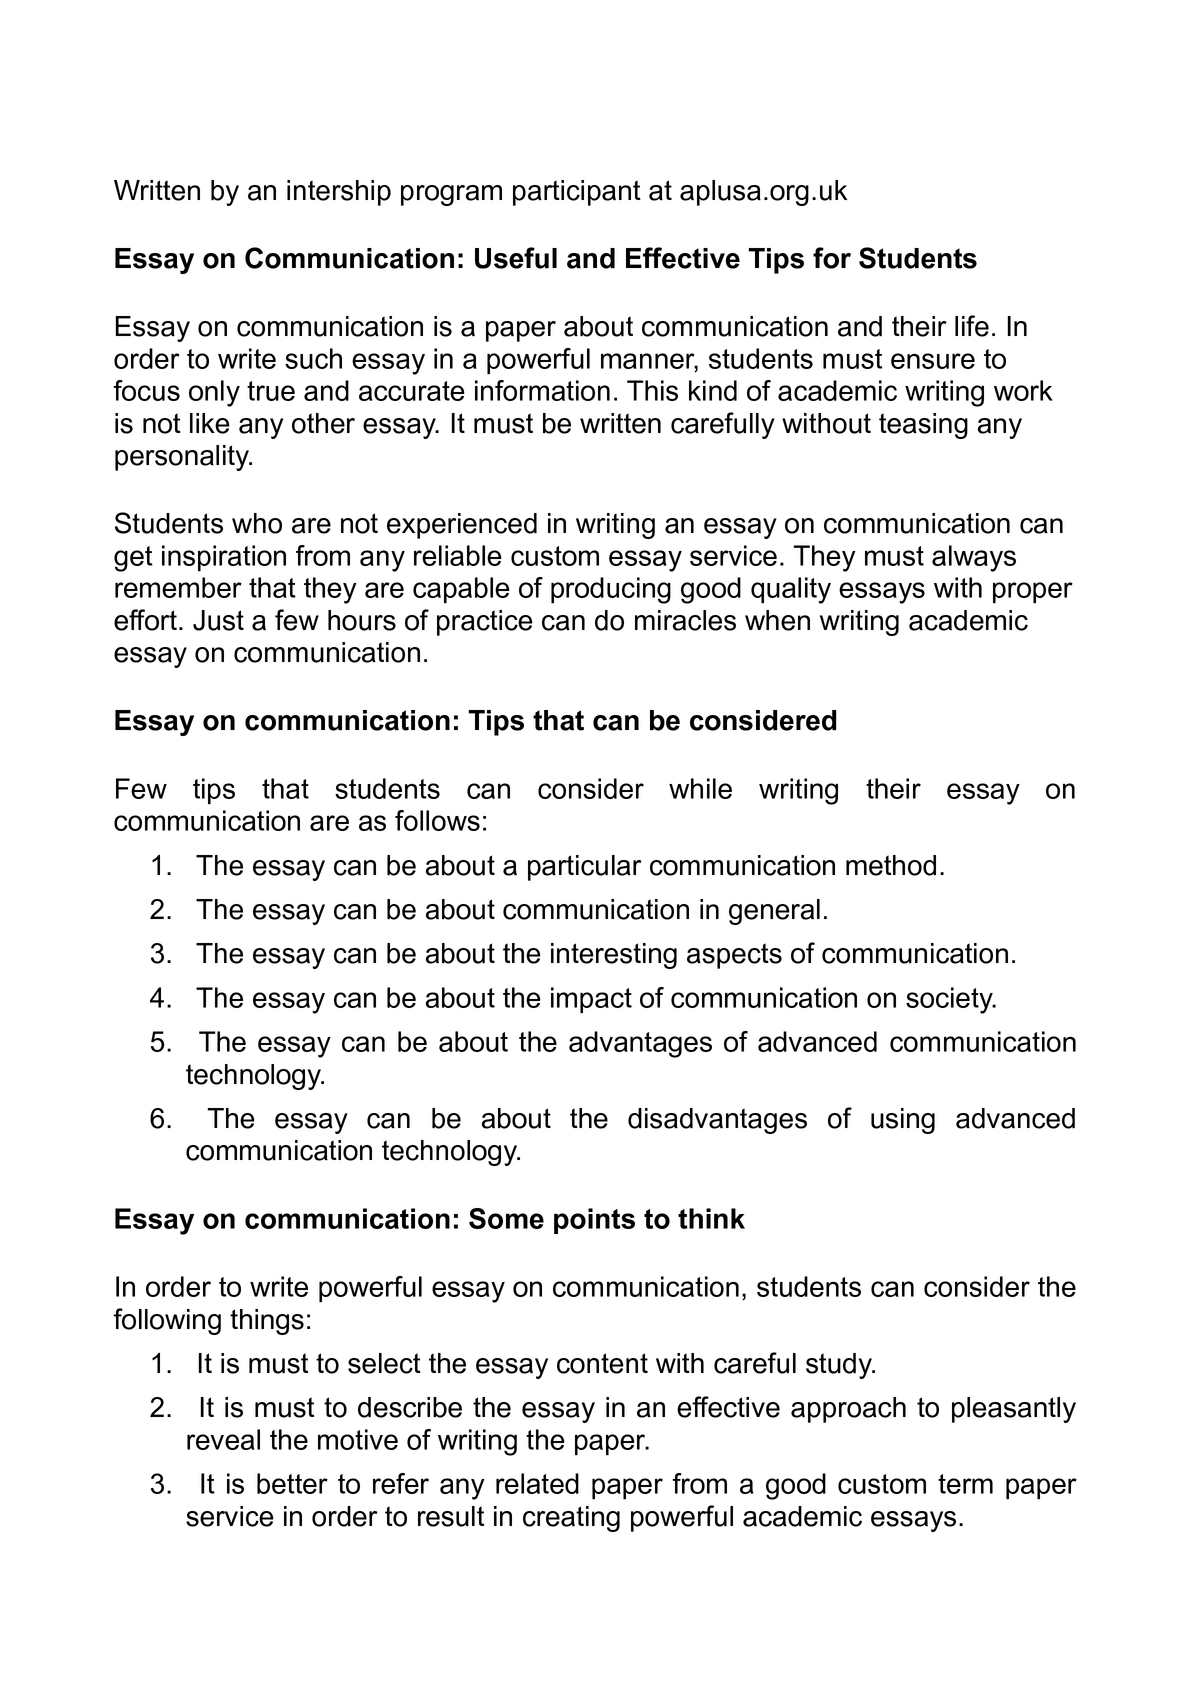 Observing and describing verbal and nonverbal communication Essay Sample